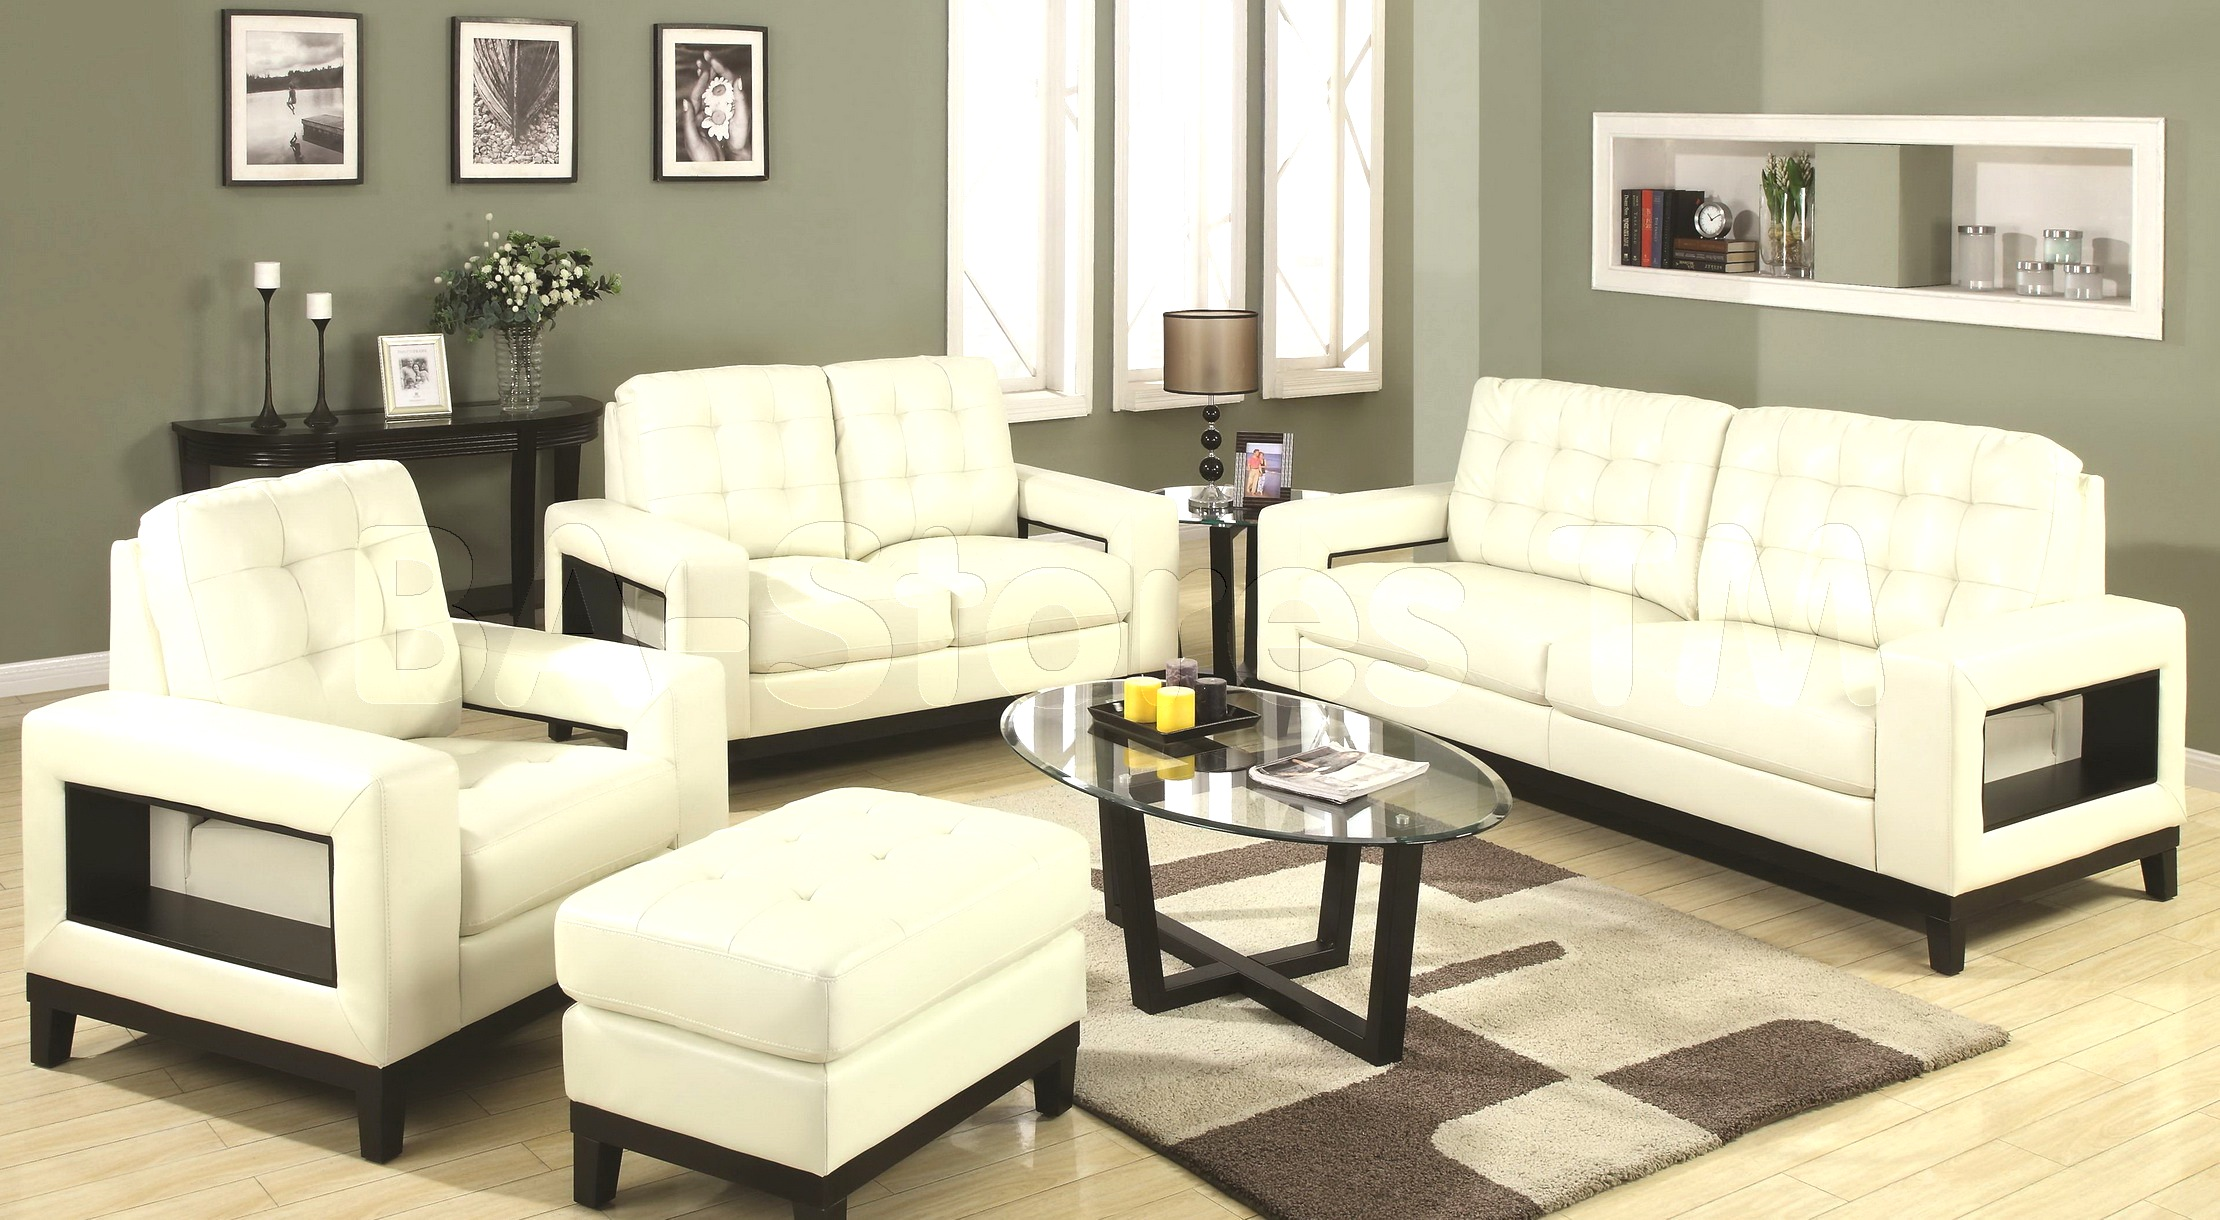 White Living Room Furniture Sets View In Gallery Modern Sofa Sets Living Room Breathtaking White